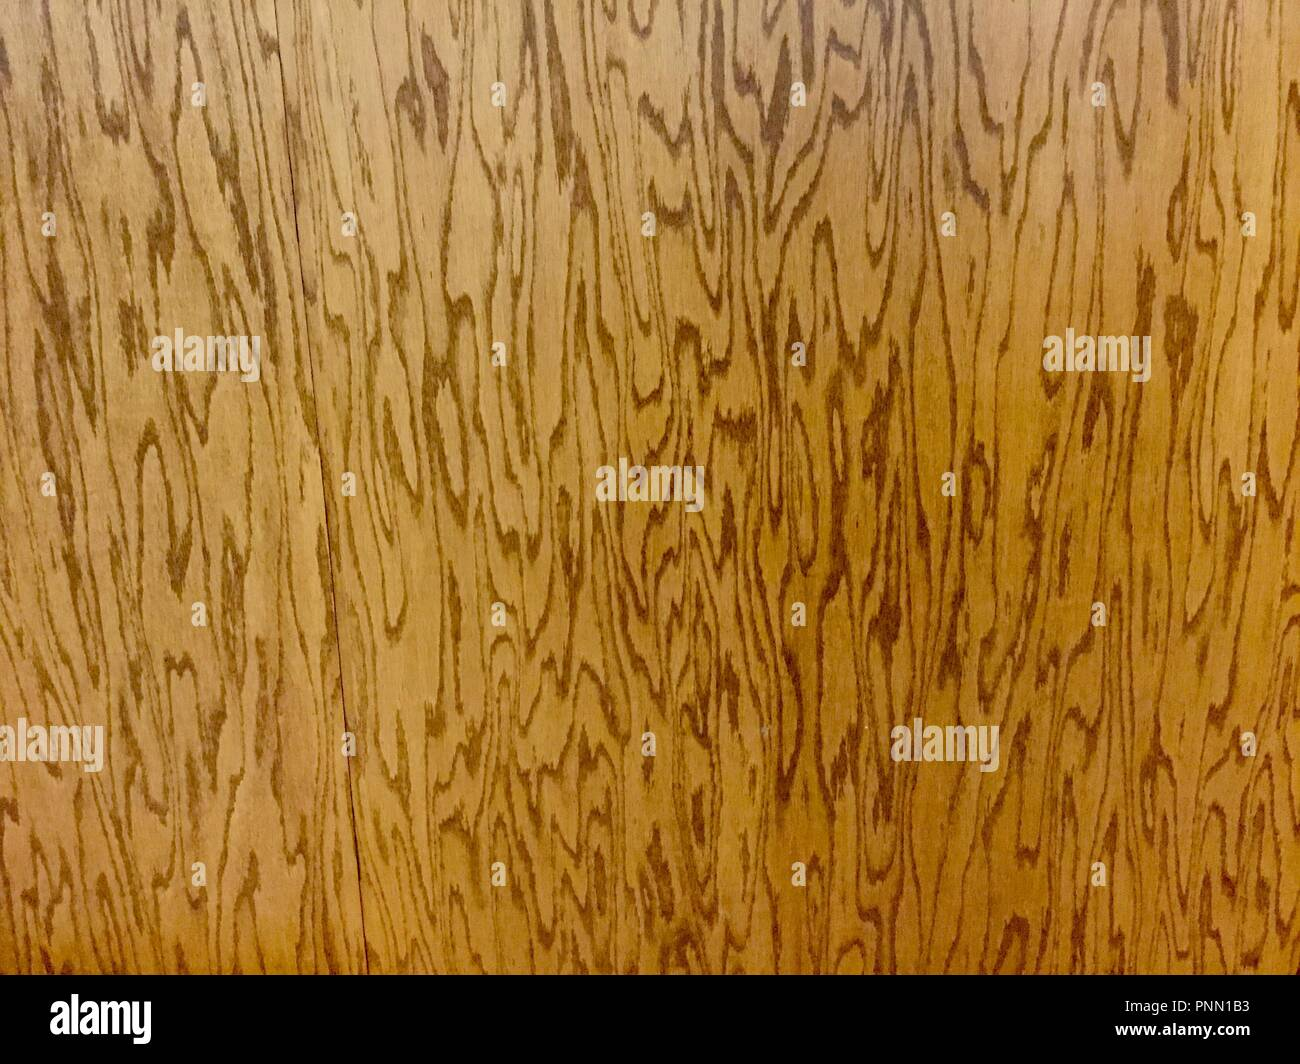 Wooden wall with polished finish showing wood grain. - Stock Image